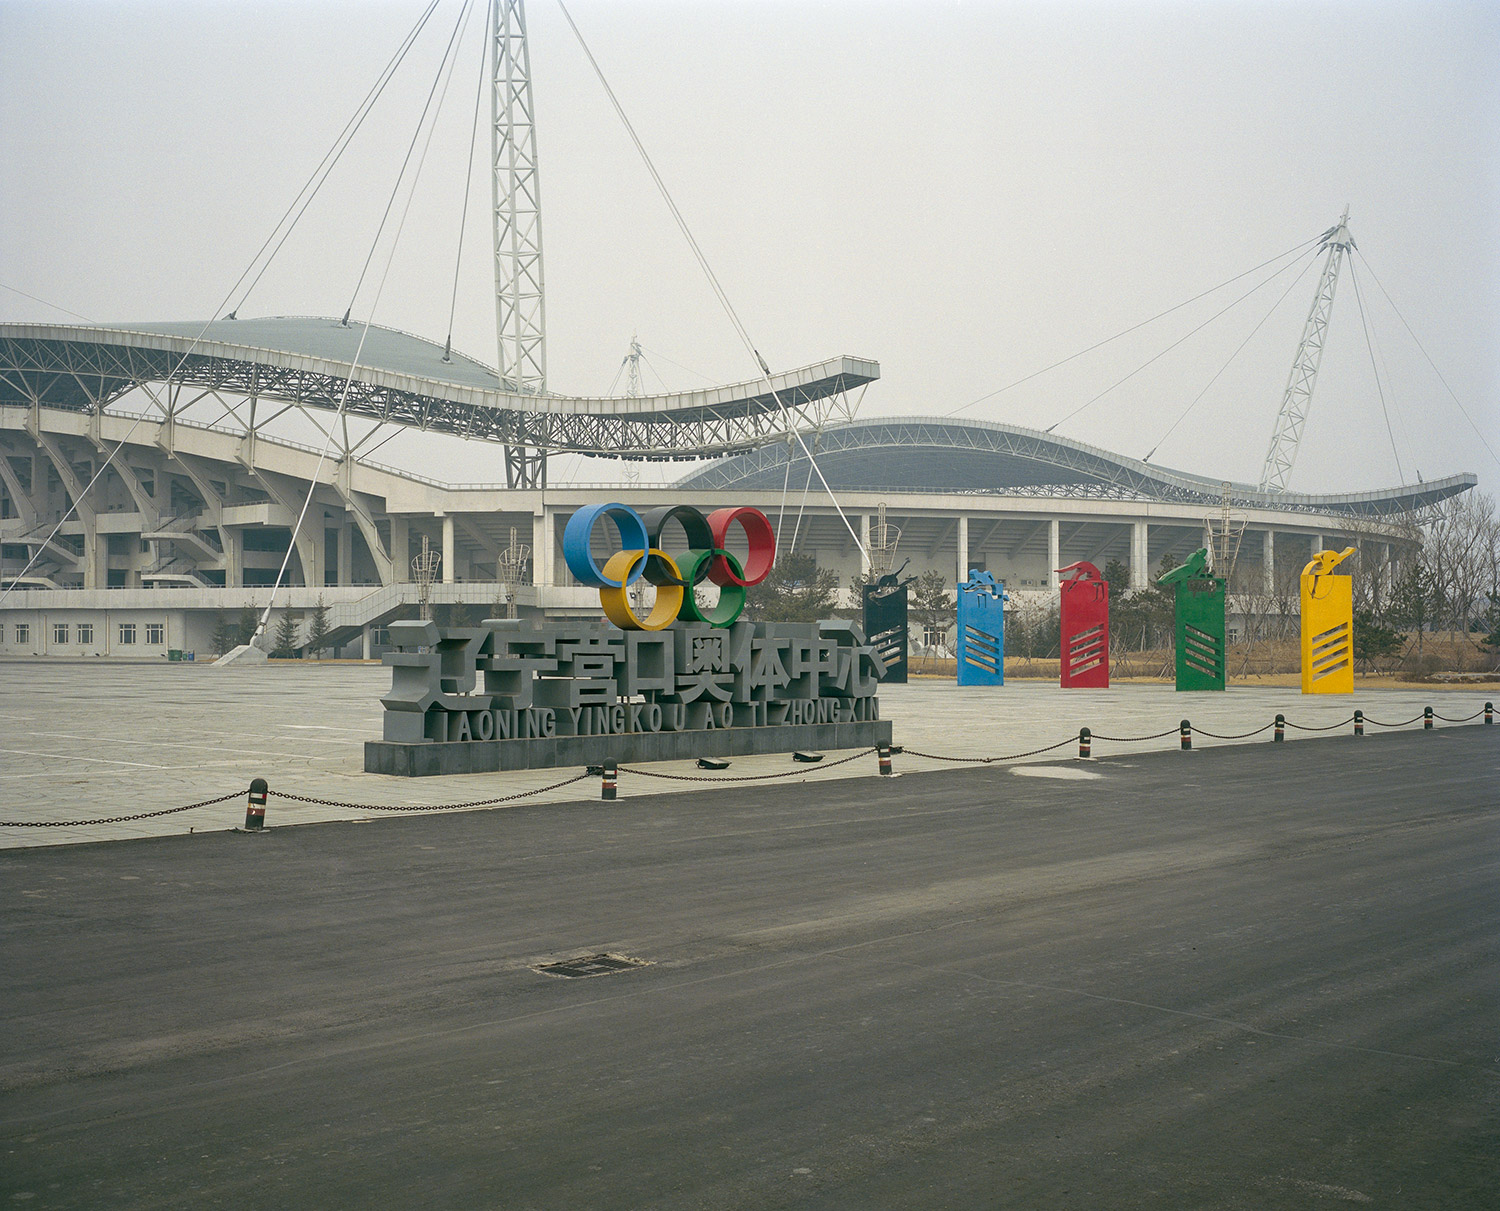 The Yingkou Olympic Stadium